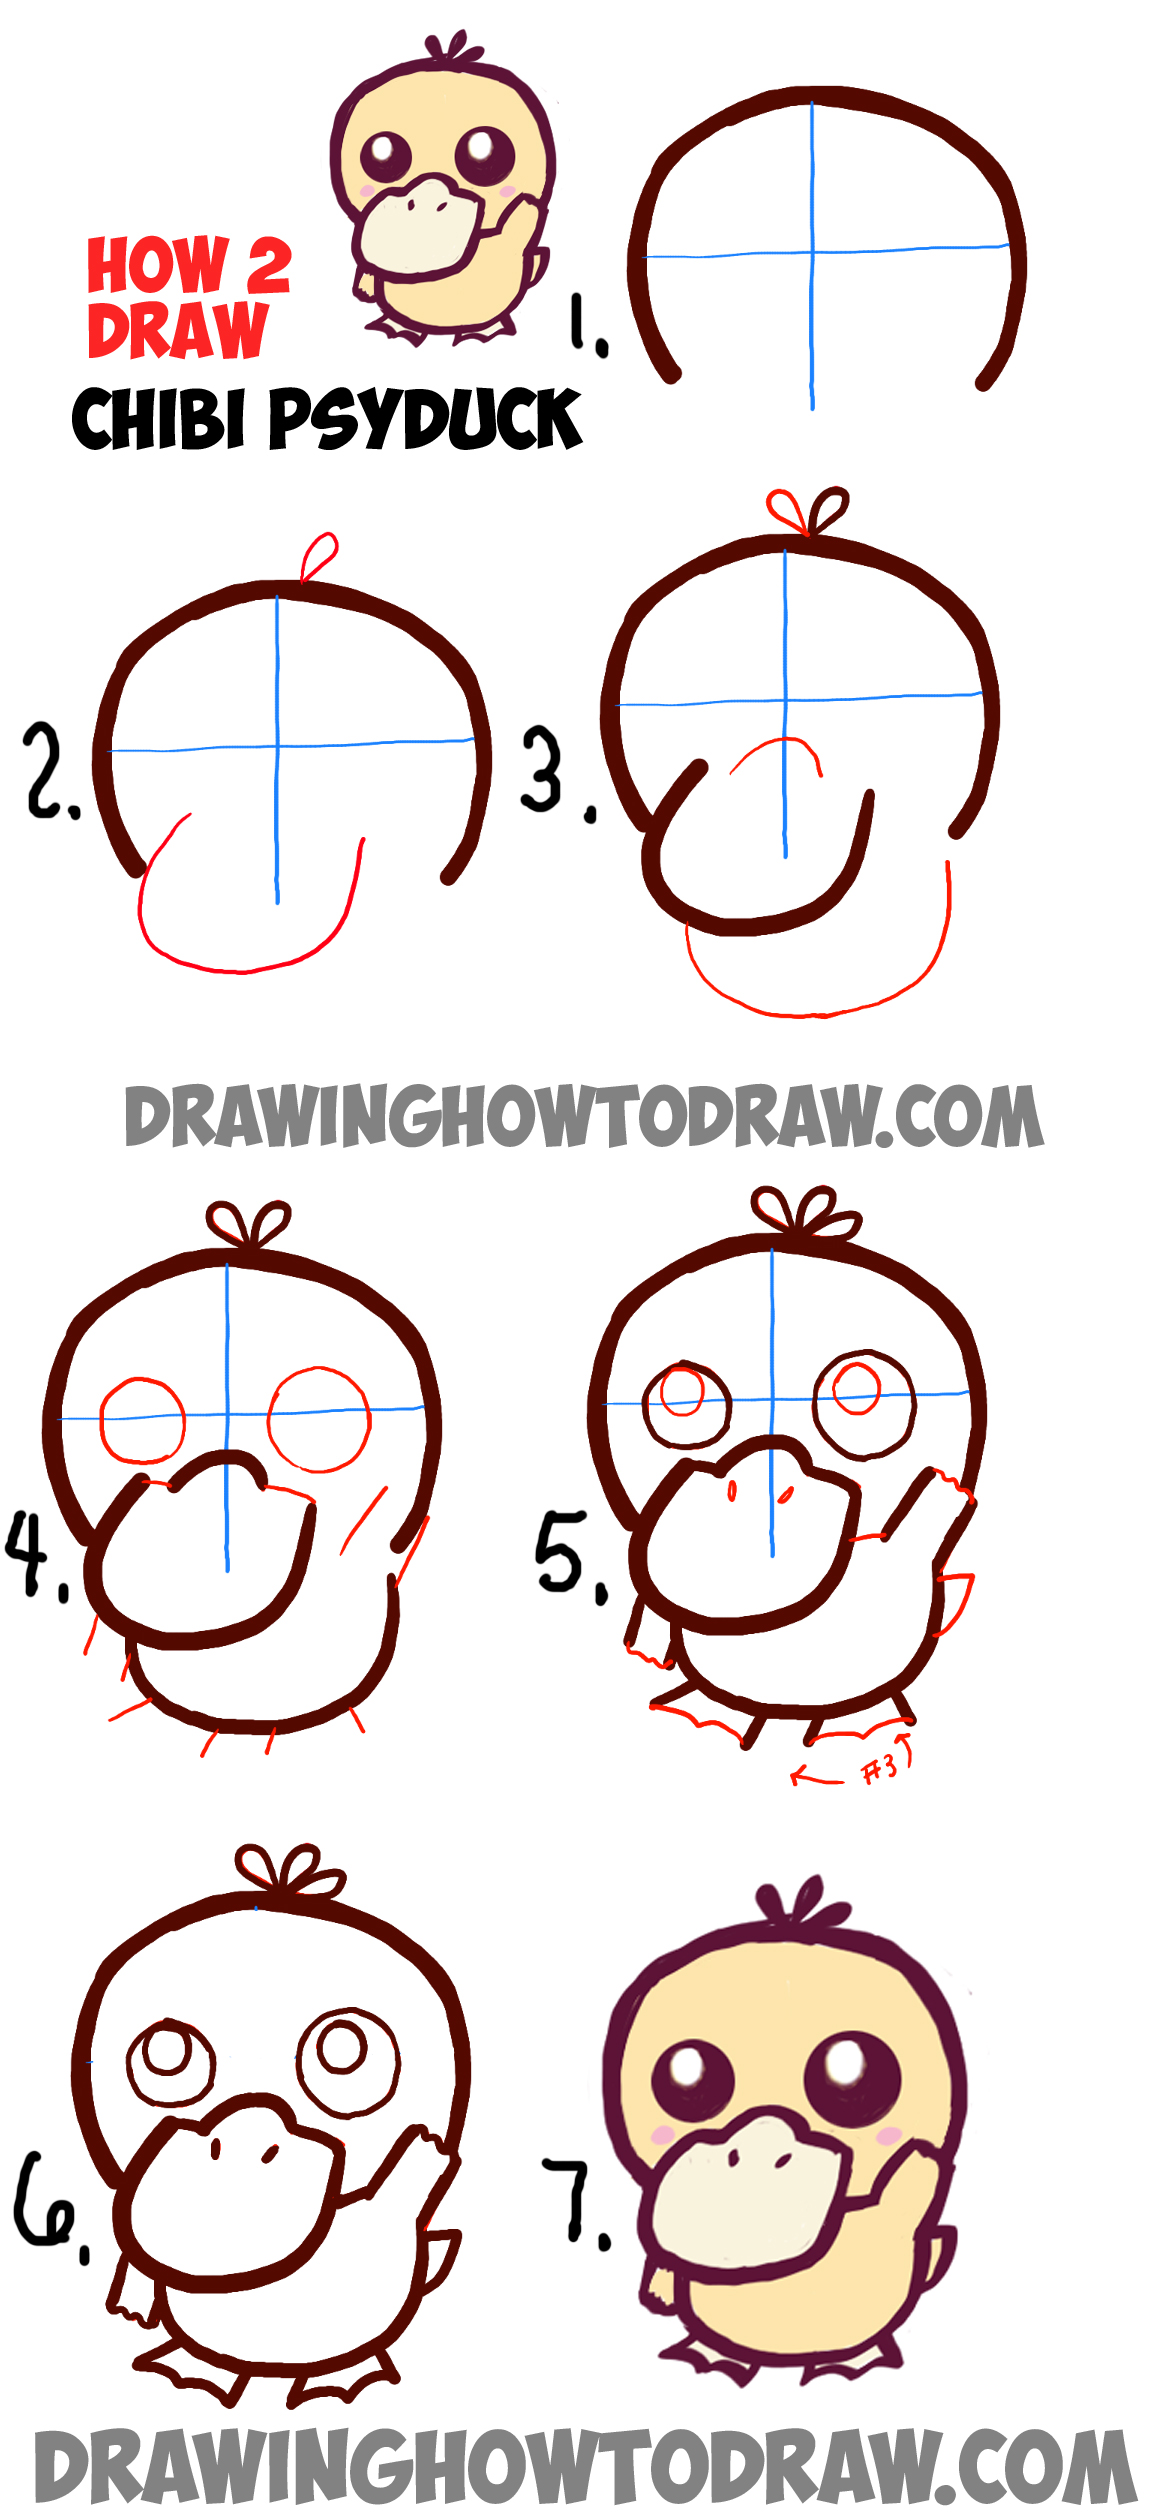 How to draw a cute baby chibi psyduck from pokemon in easy for Learn drawing online step by step